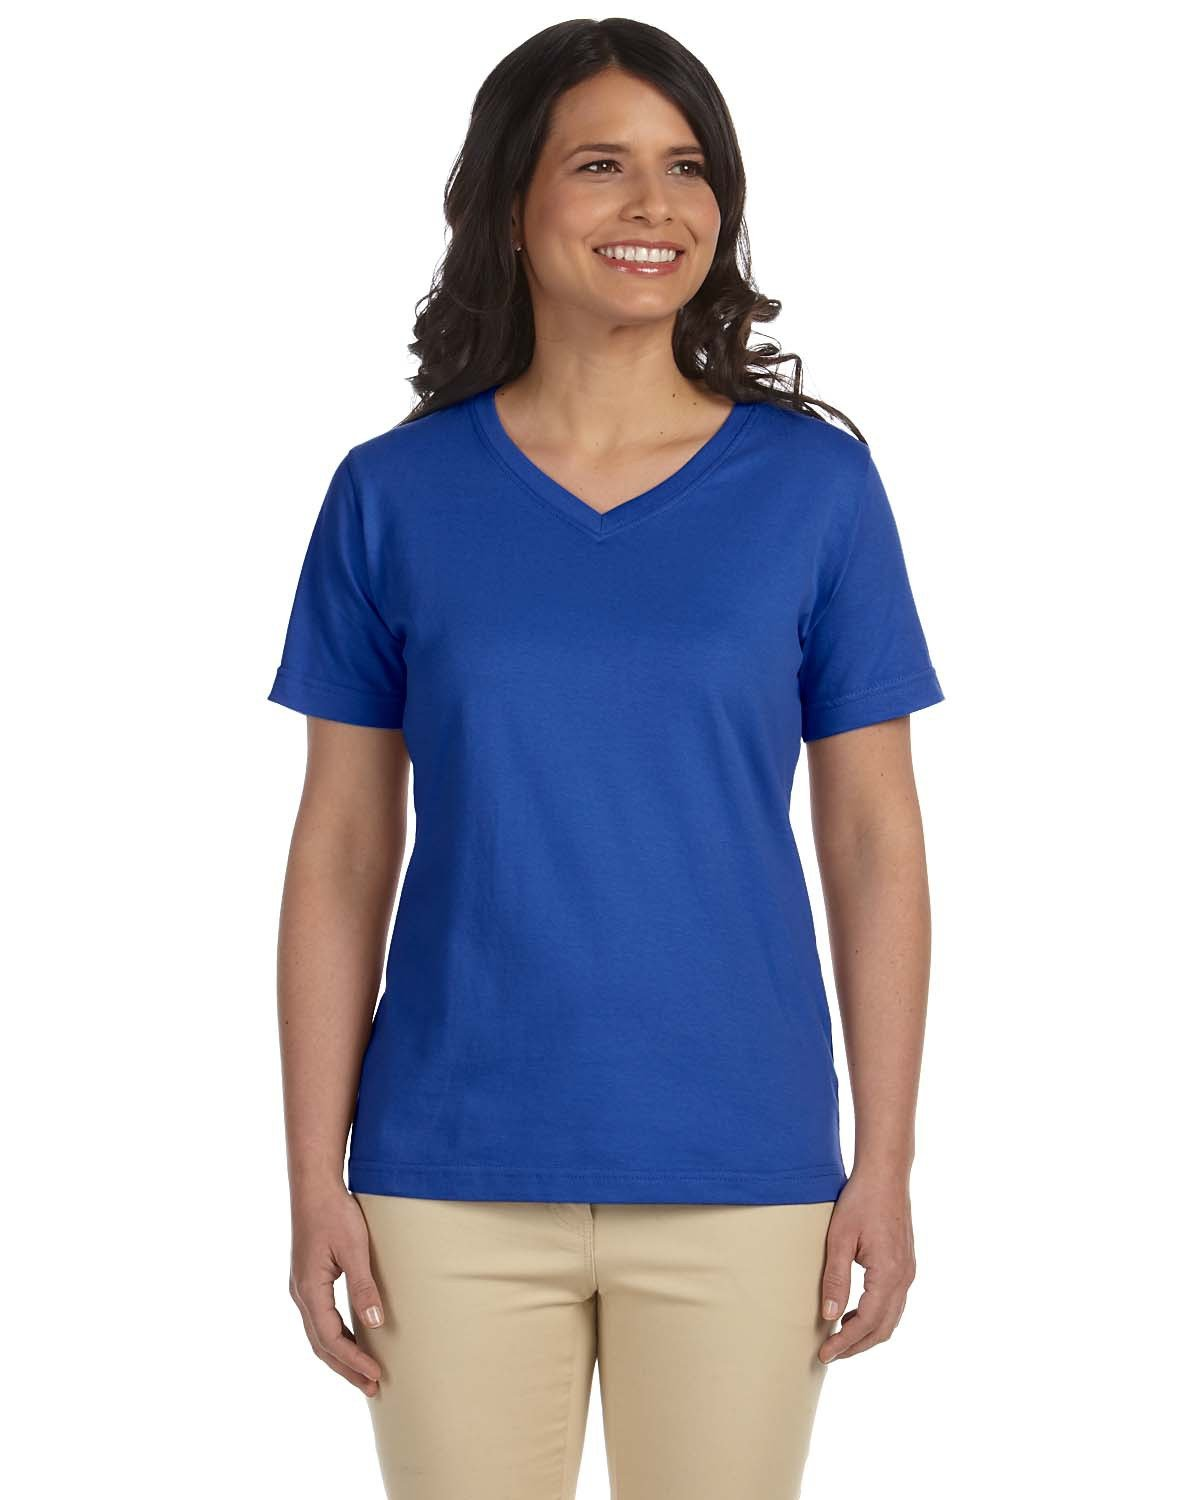 LAT Ladies' Premium Jersey V-Neck T-Shirt ROYAL